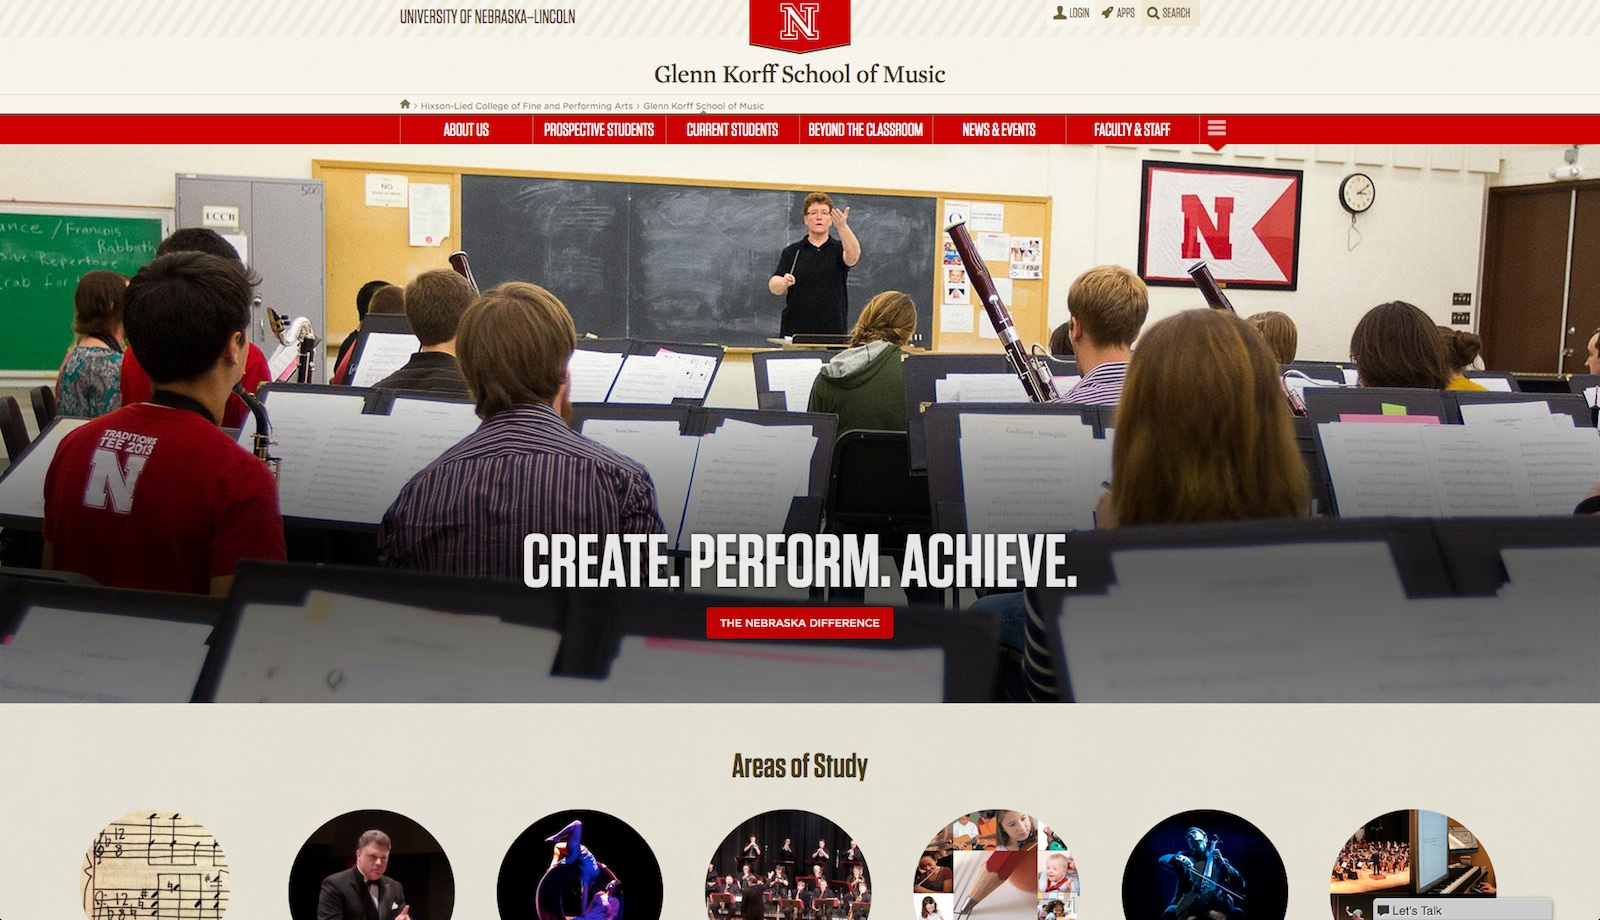 Glenn Korff School of Music New website